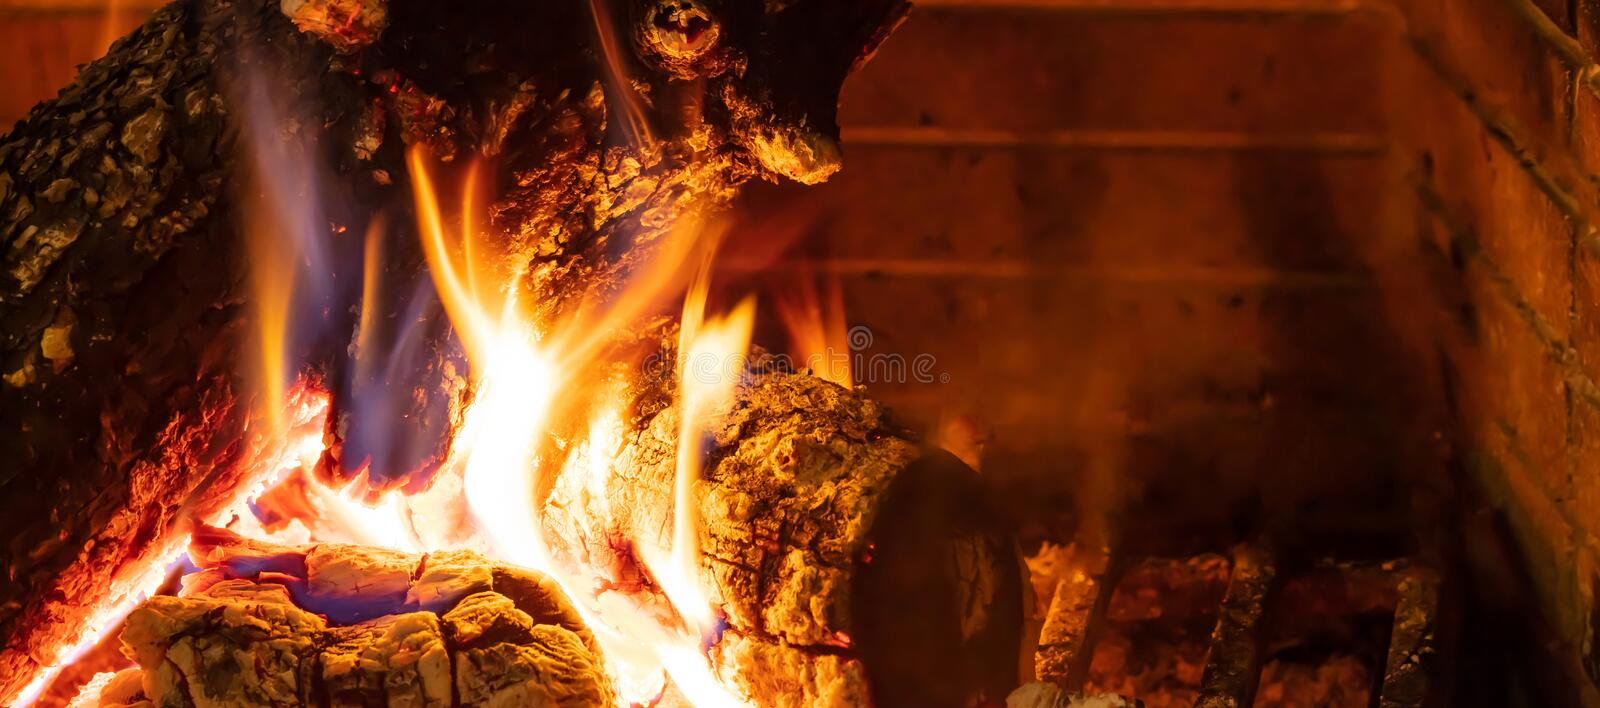 Cozy fireplace. Wood logs burning, relaxation and warm home royalty free stock image